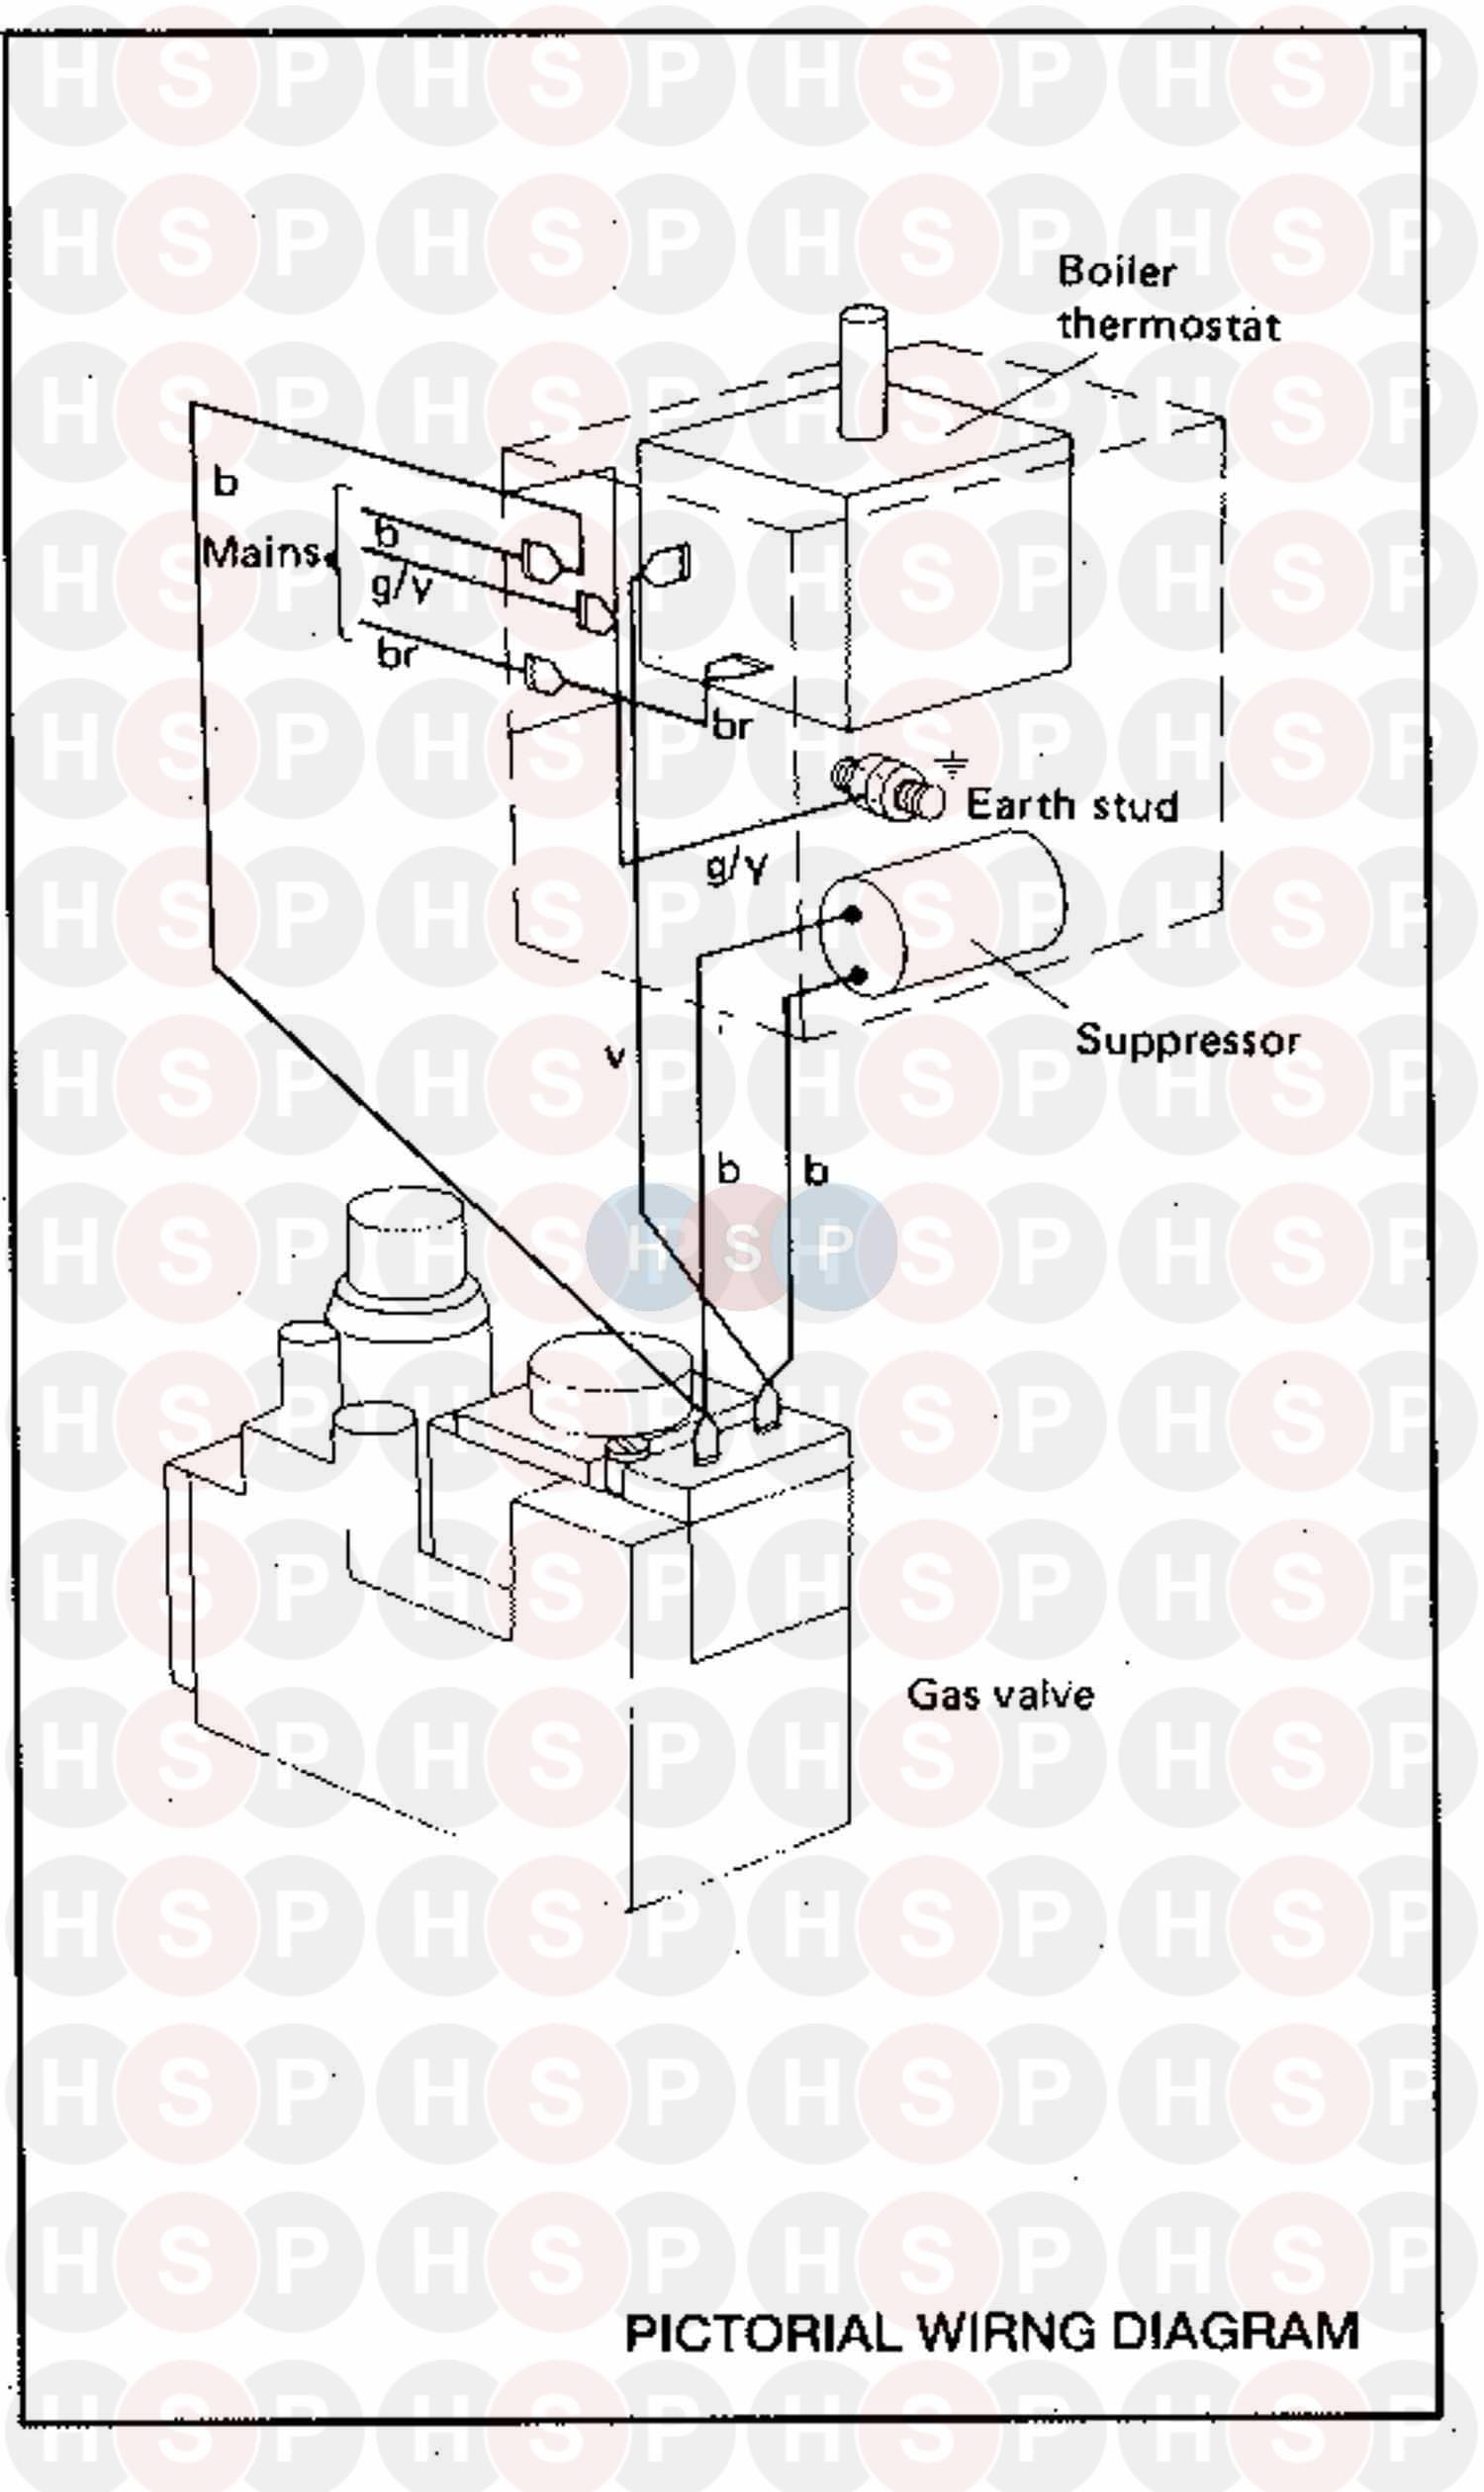 Concord 4 Wiring Diagram Ideal Wlx Cf 50 2 Heating Spare Parts Click The To Open It On A New Page